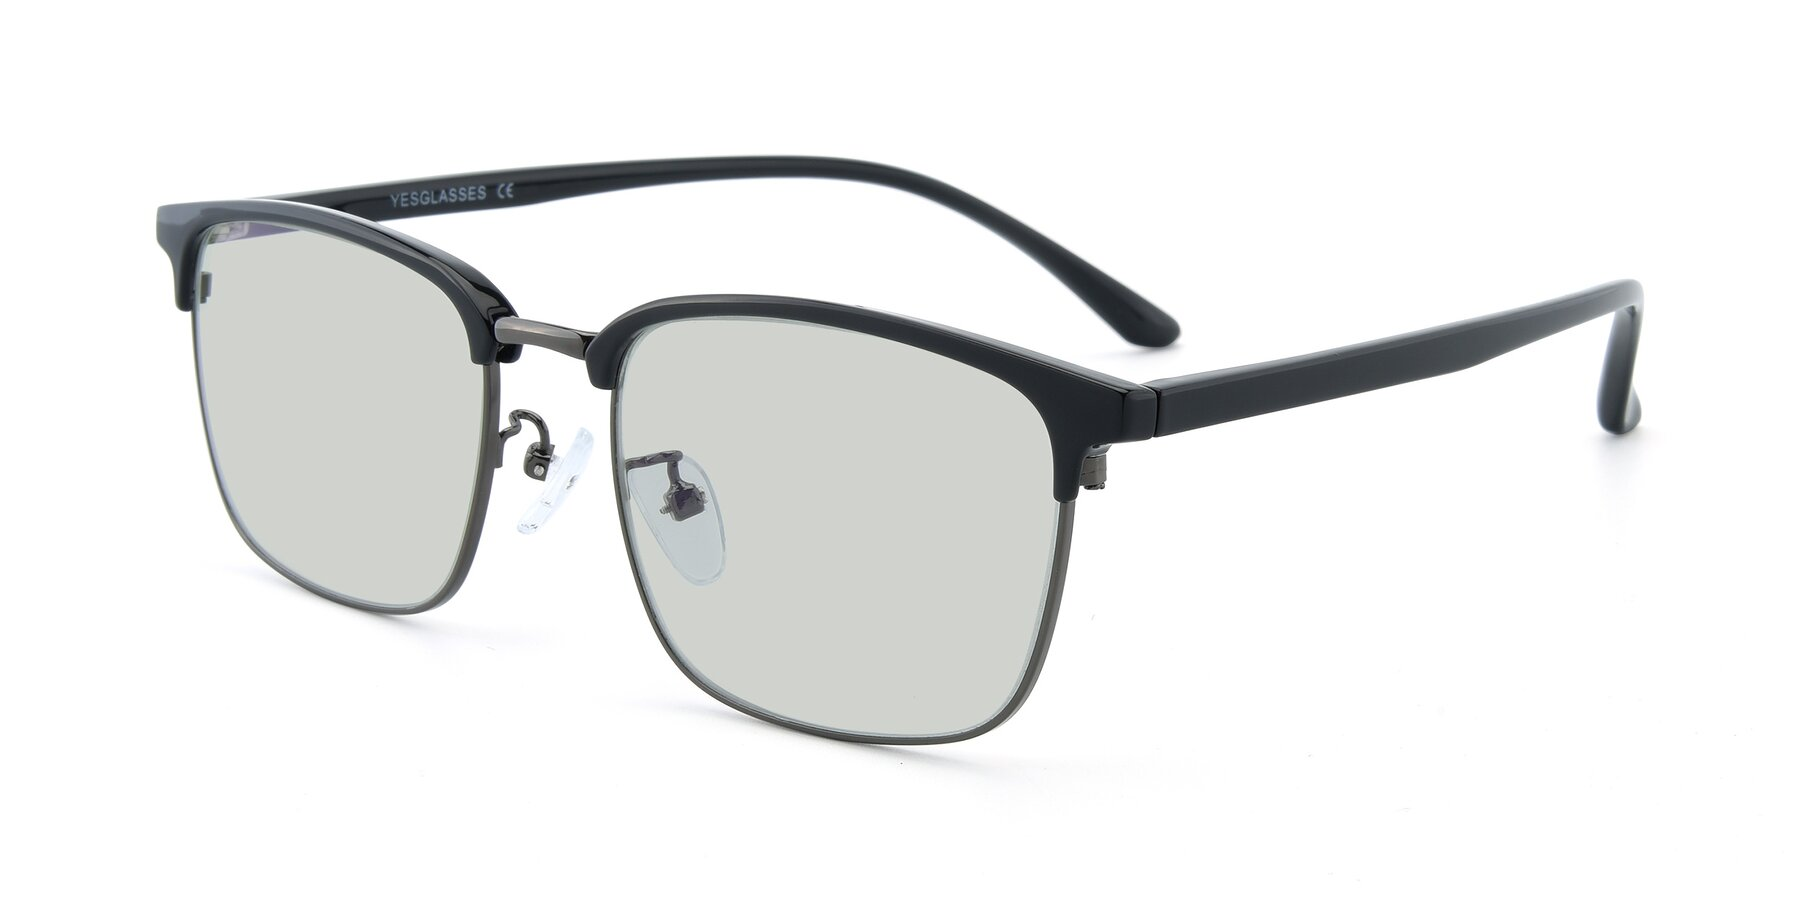 Angle of 00340 in Black-Gun with Light Green Tinted Lenses